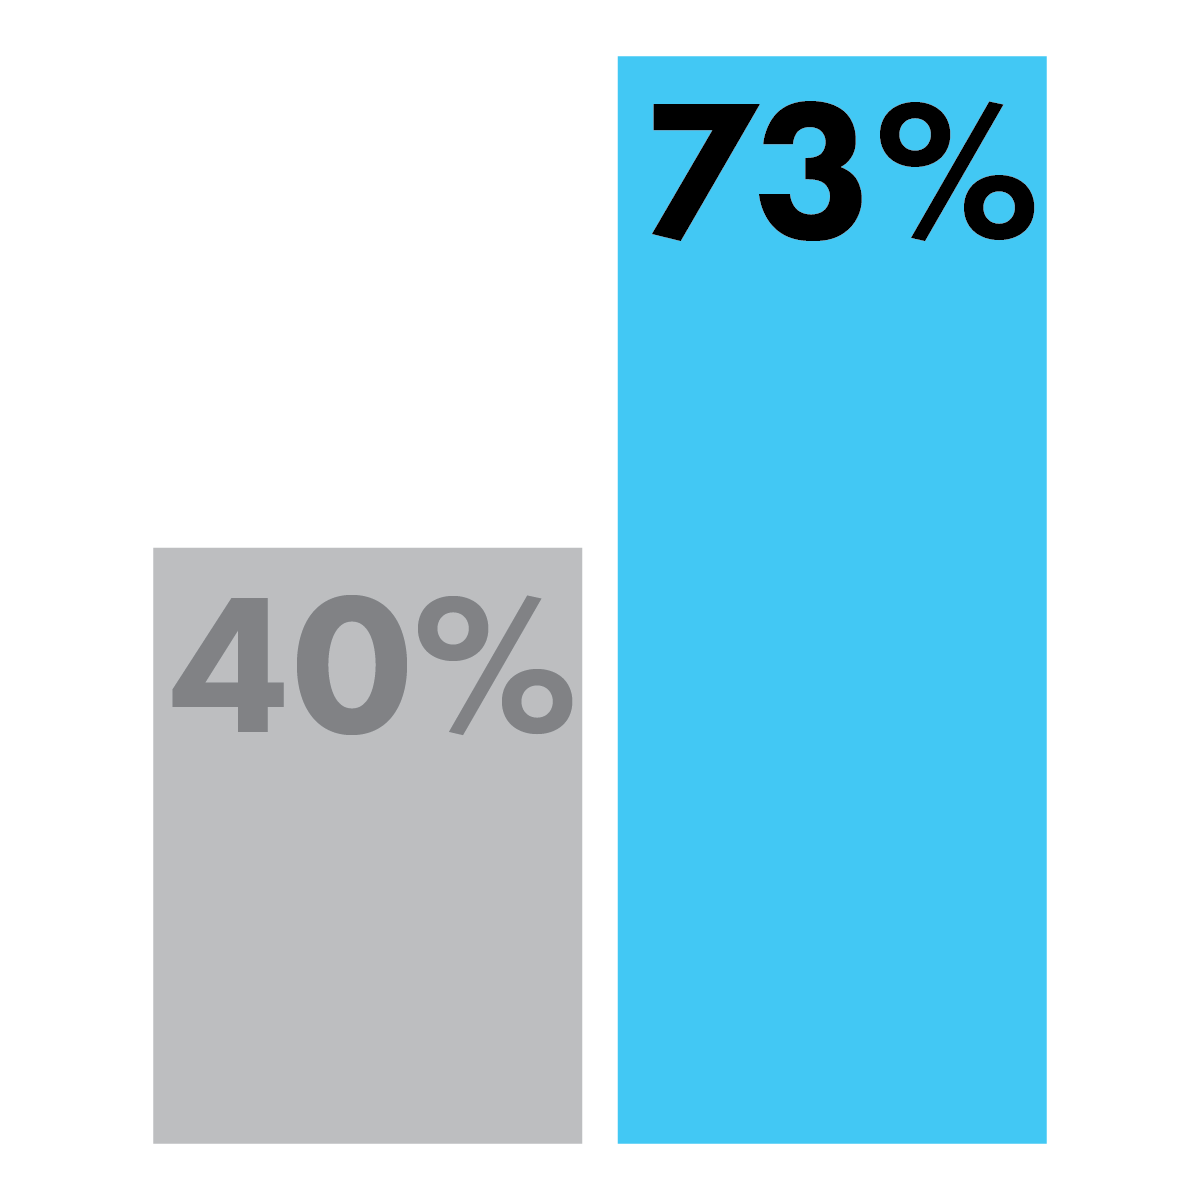 73% of CoreAtlas students show a growth mindset, compared to an estimated 40% nationally.*    *CoreAtlas data based on survey of 175 beta users; national average data from Education Action Zone.